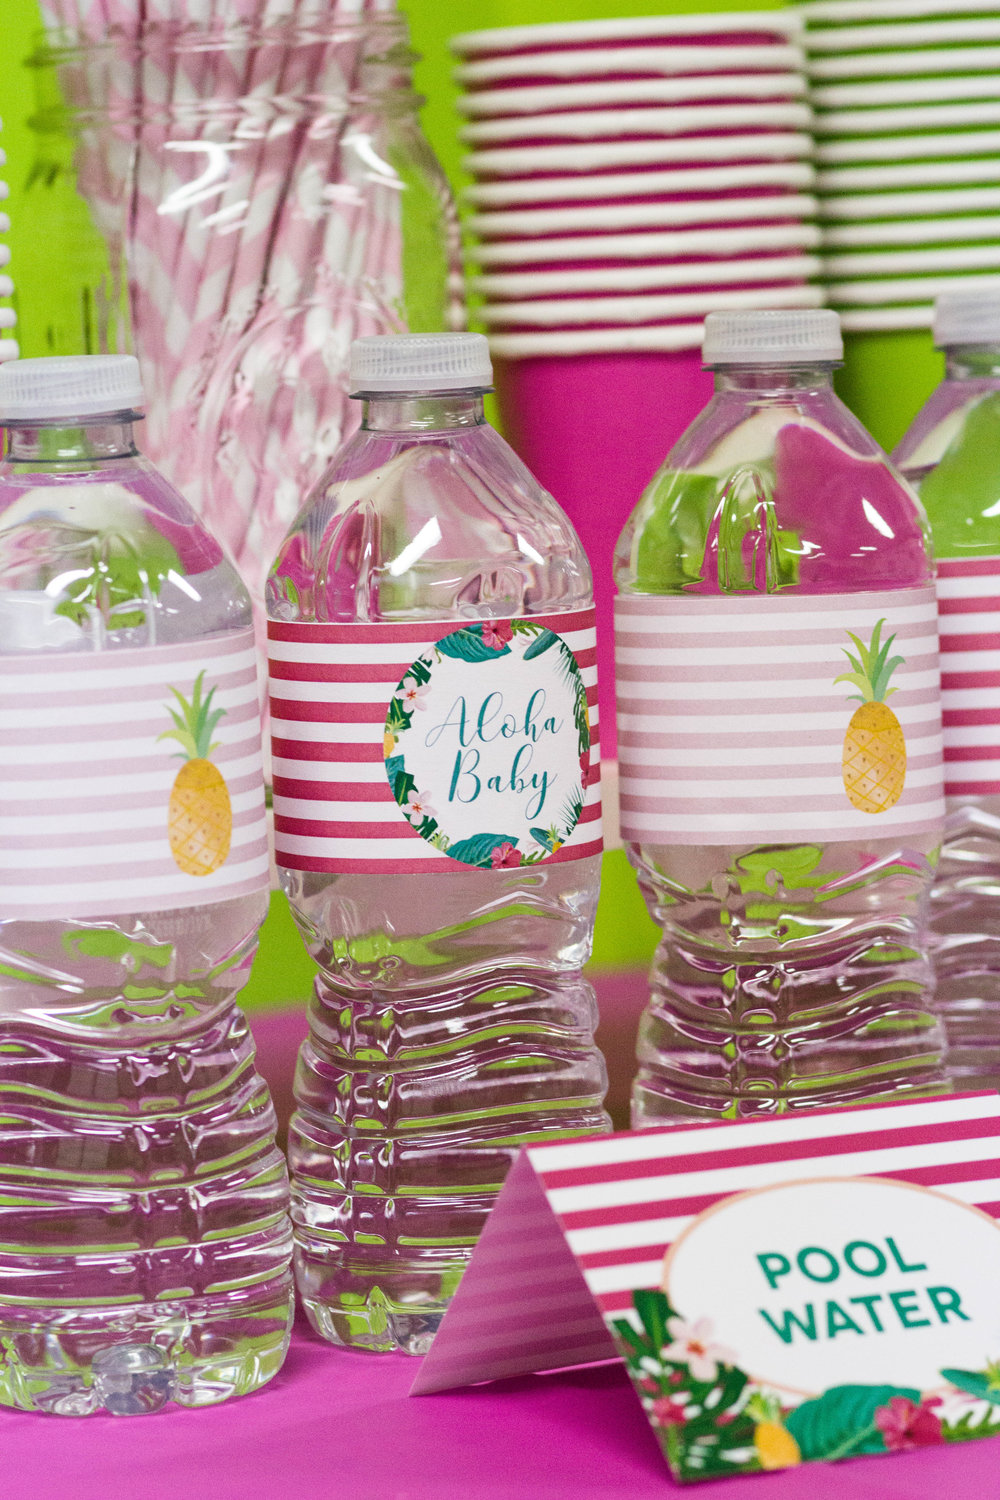 Flamingo bottle wrappers from a flamingo themed baby shower // designs from shopmkkm.com